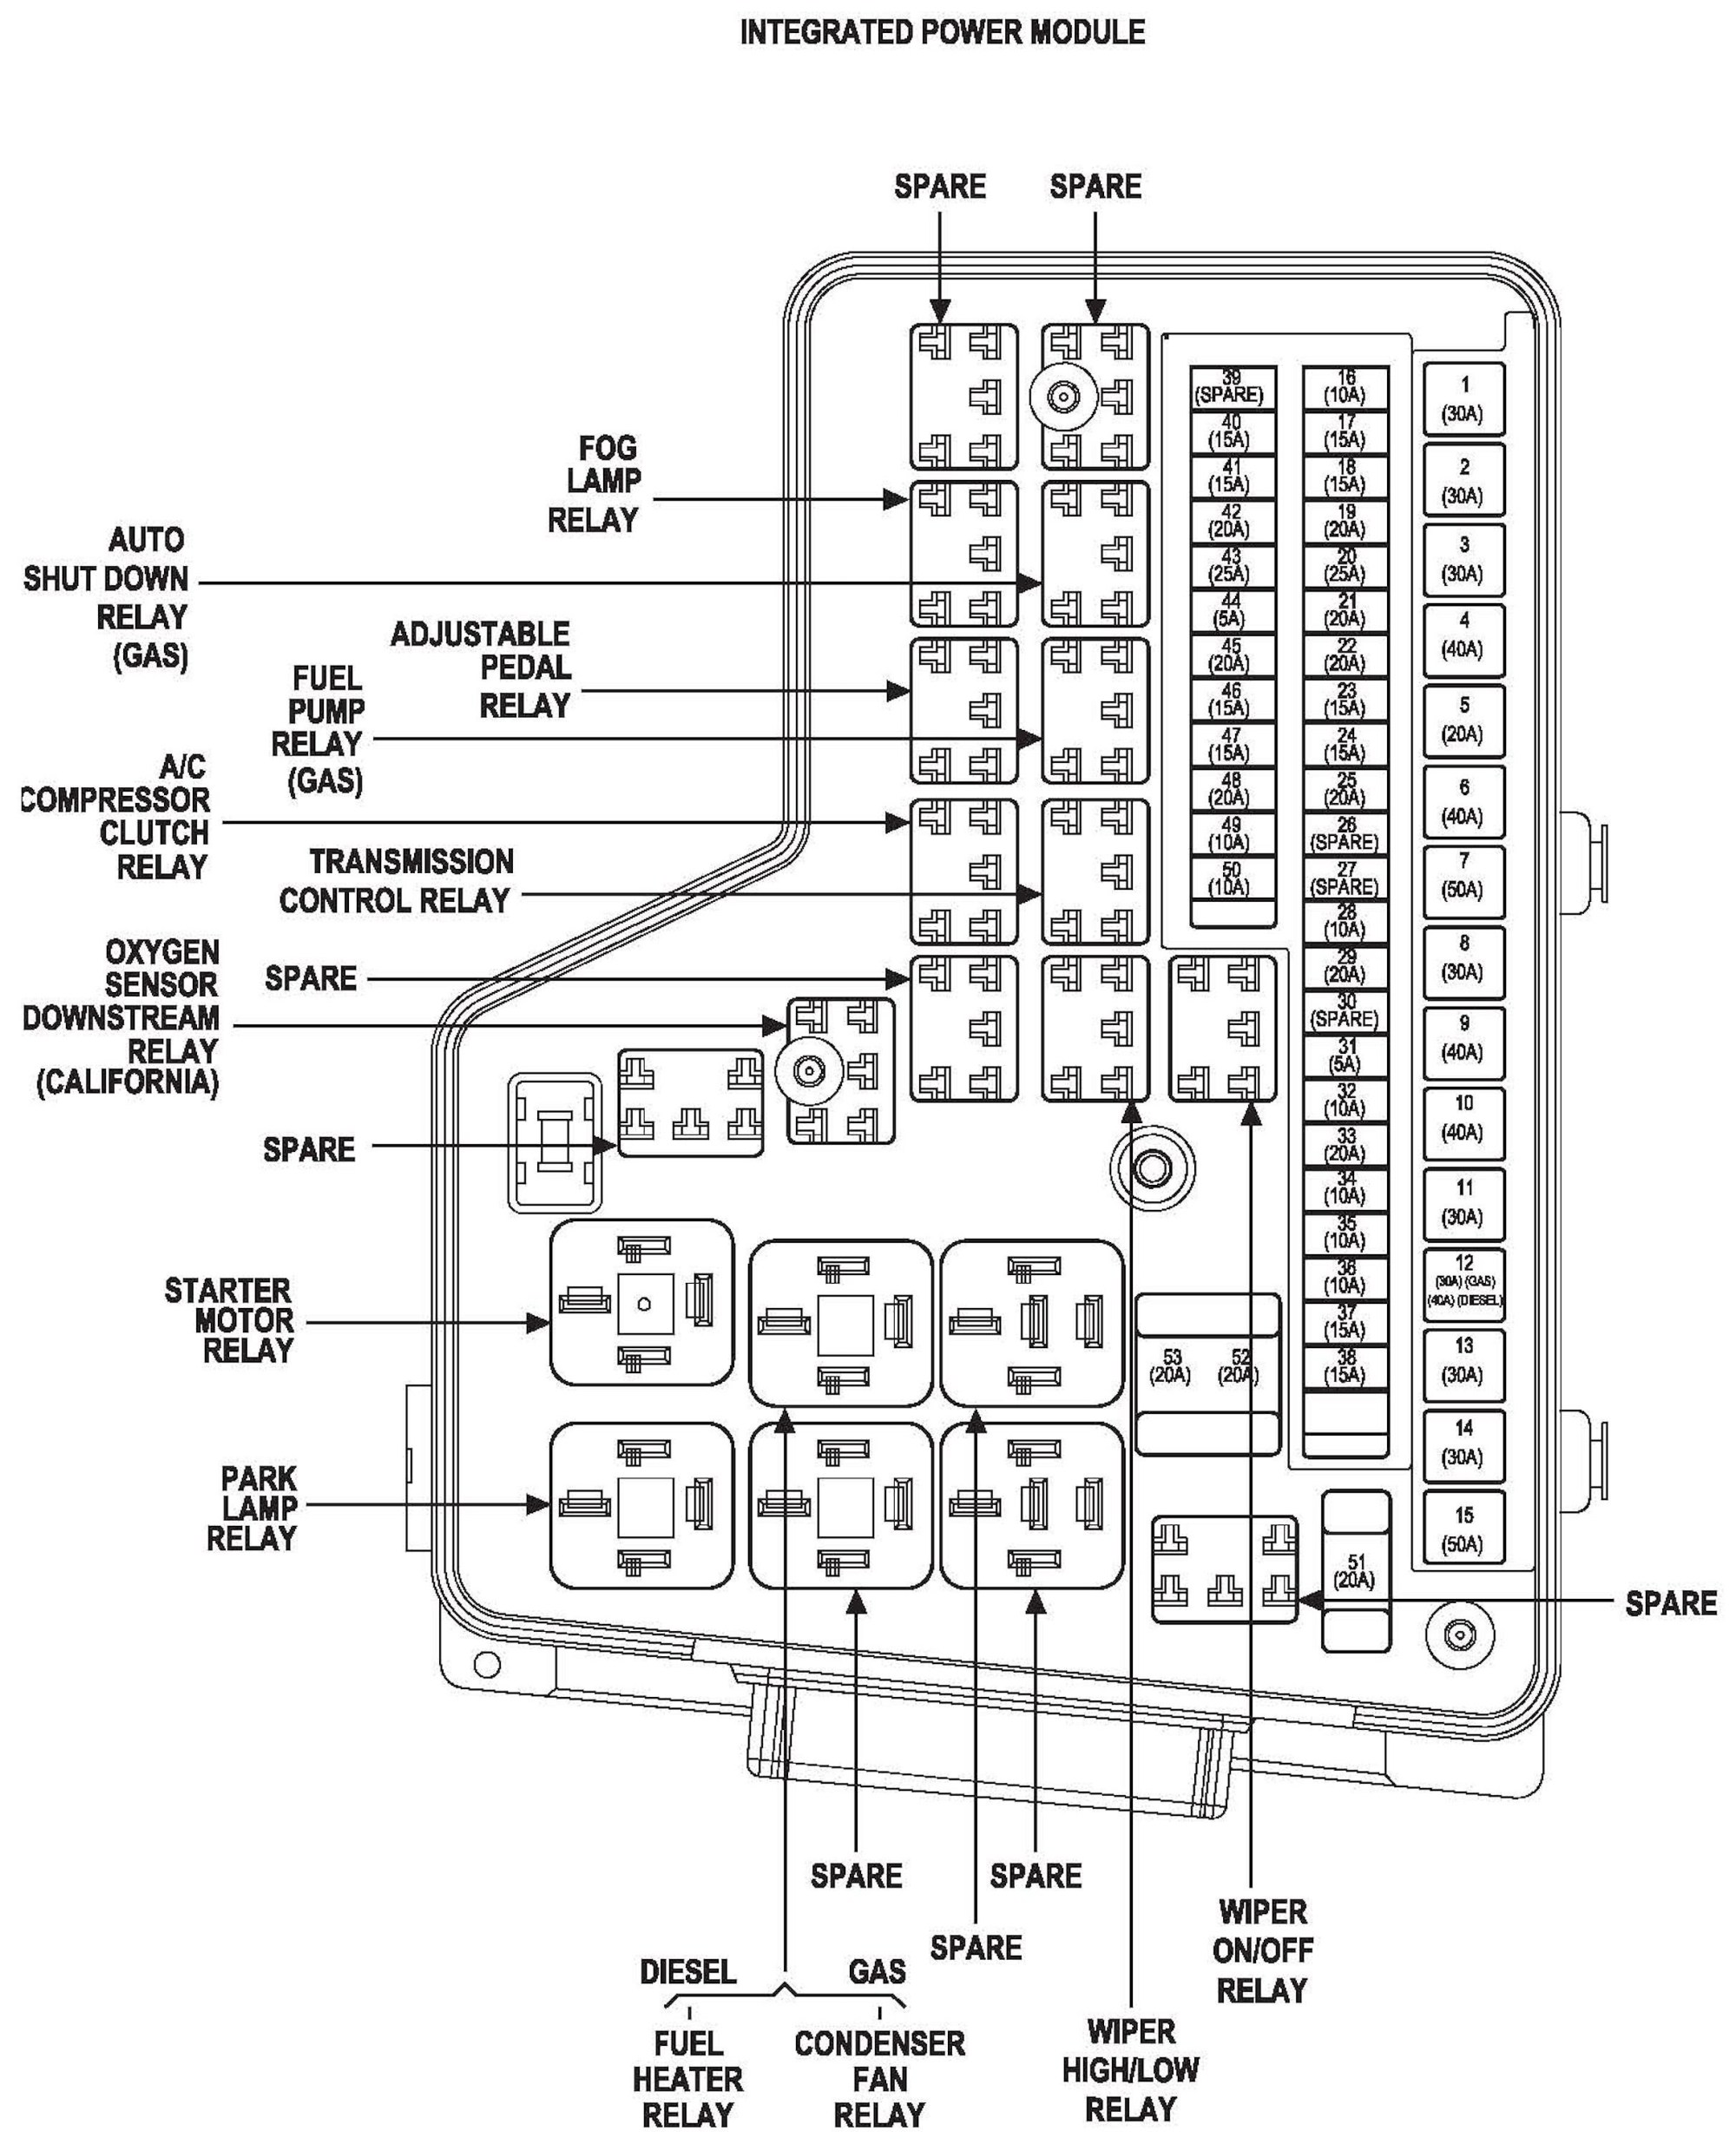 hight resolution of 2015 dodge ram fuse diagram wiring diagram used 2012 dodge avenger fuse box location 2012 ram fuse box